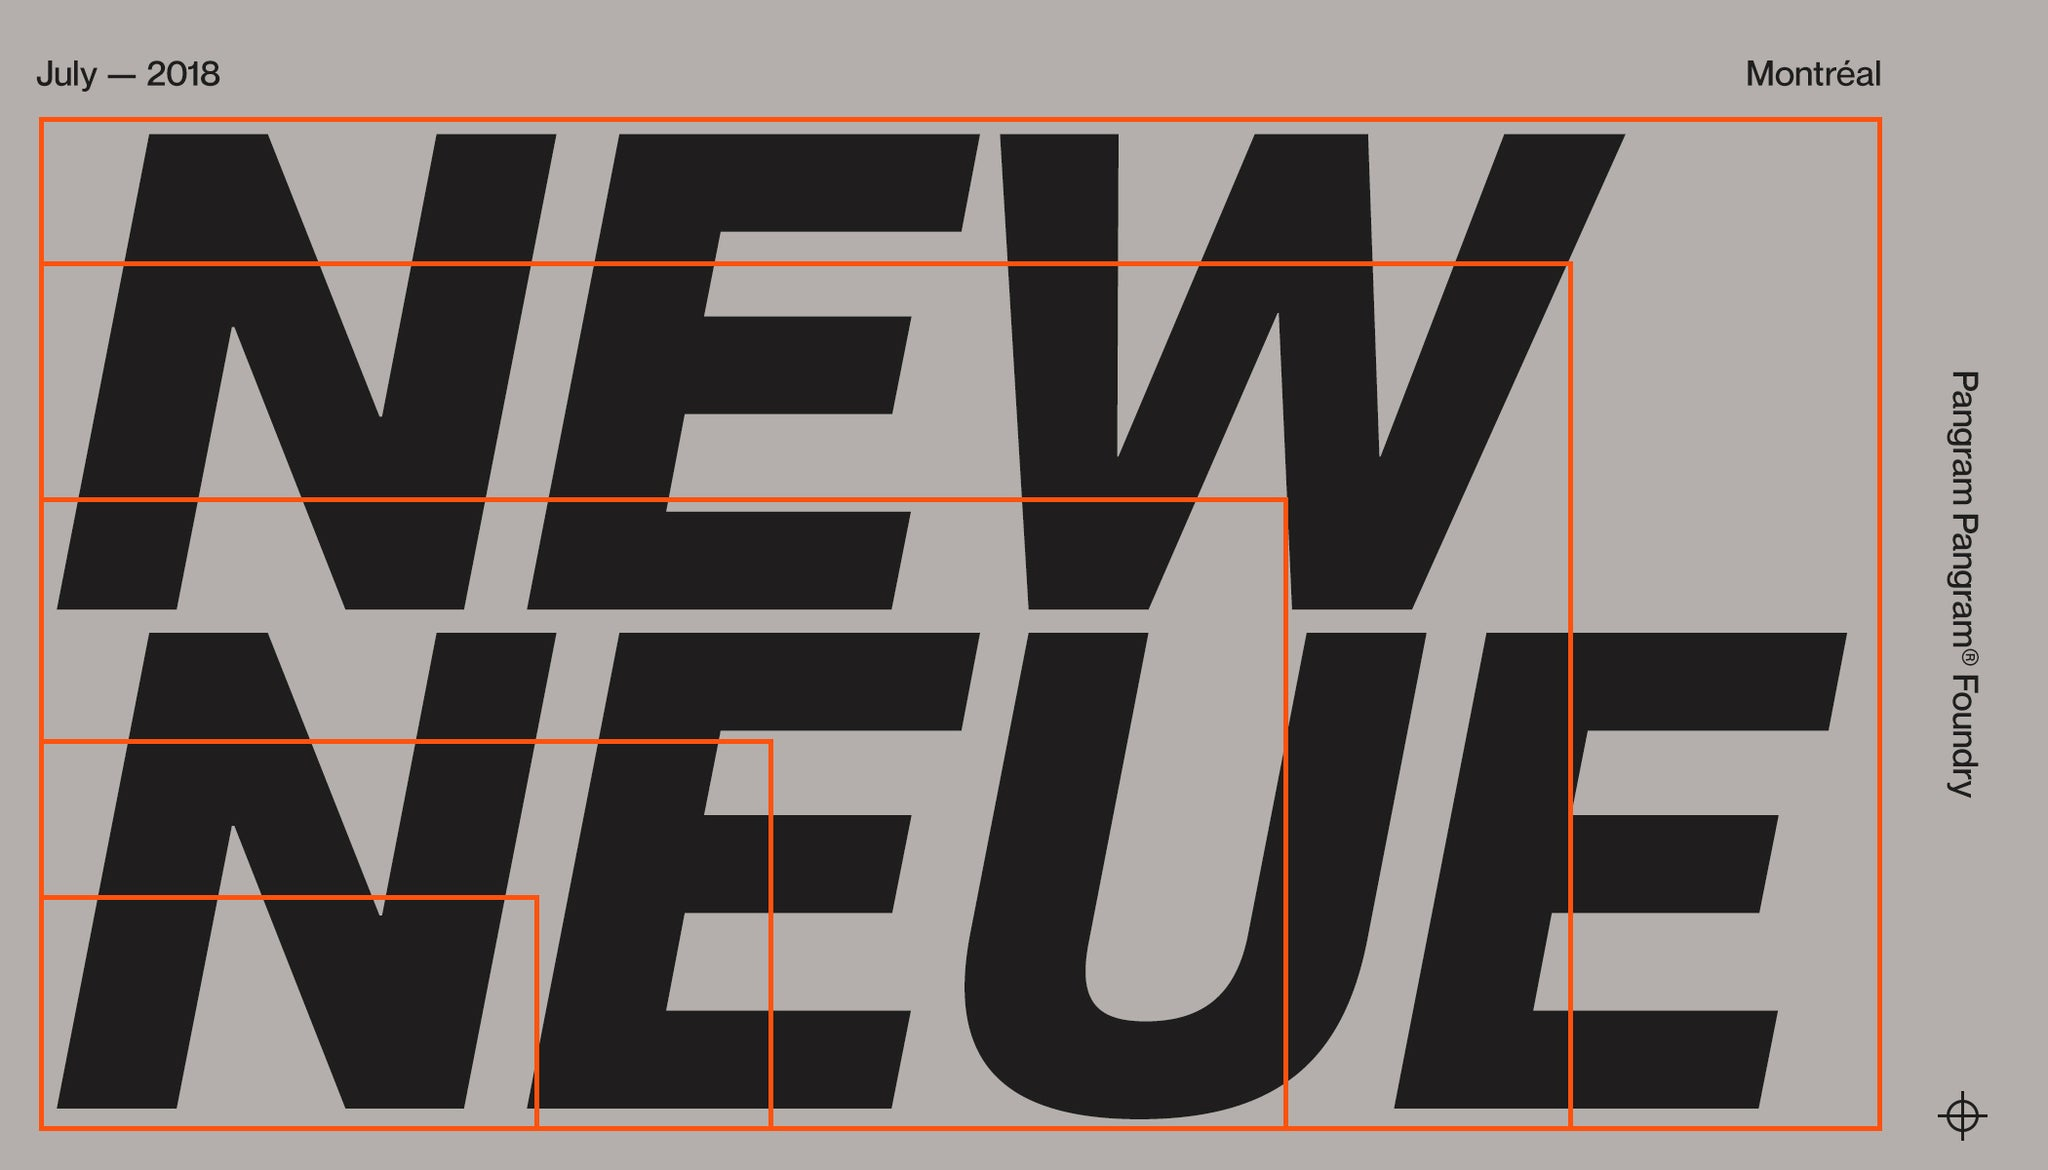 Free Font Pairing Guide — Neue Montreal, the Grotesk